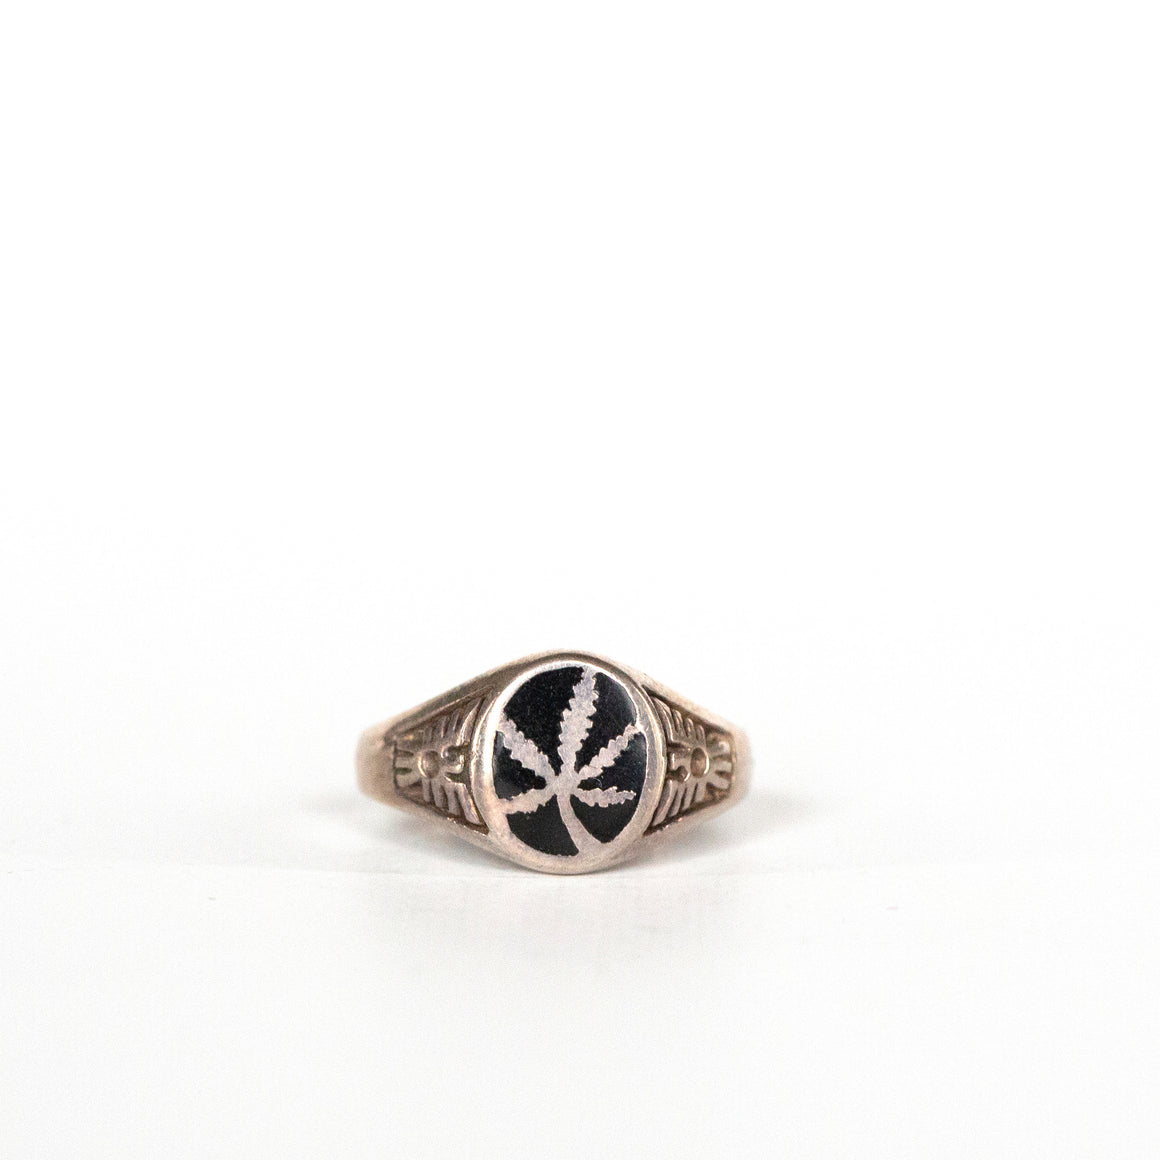 VINTAGE JEWELRY | MARIJUANA ONYX STERLING RING (SIZE 7)